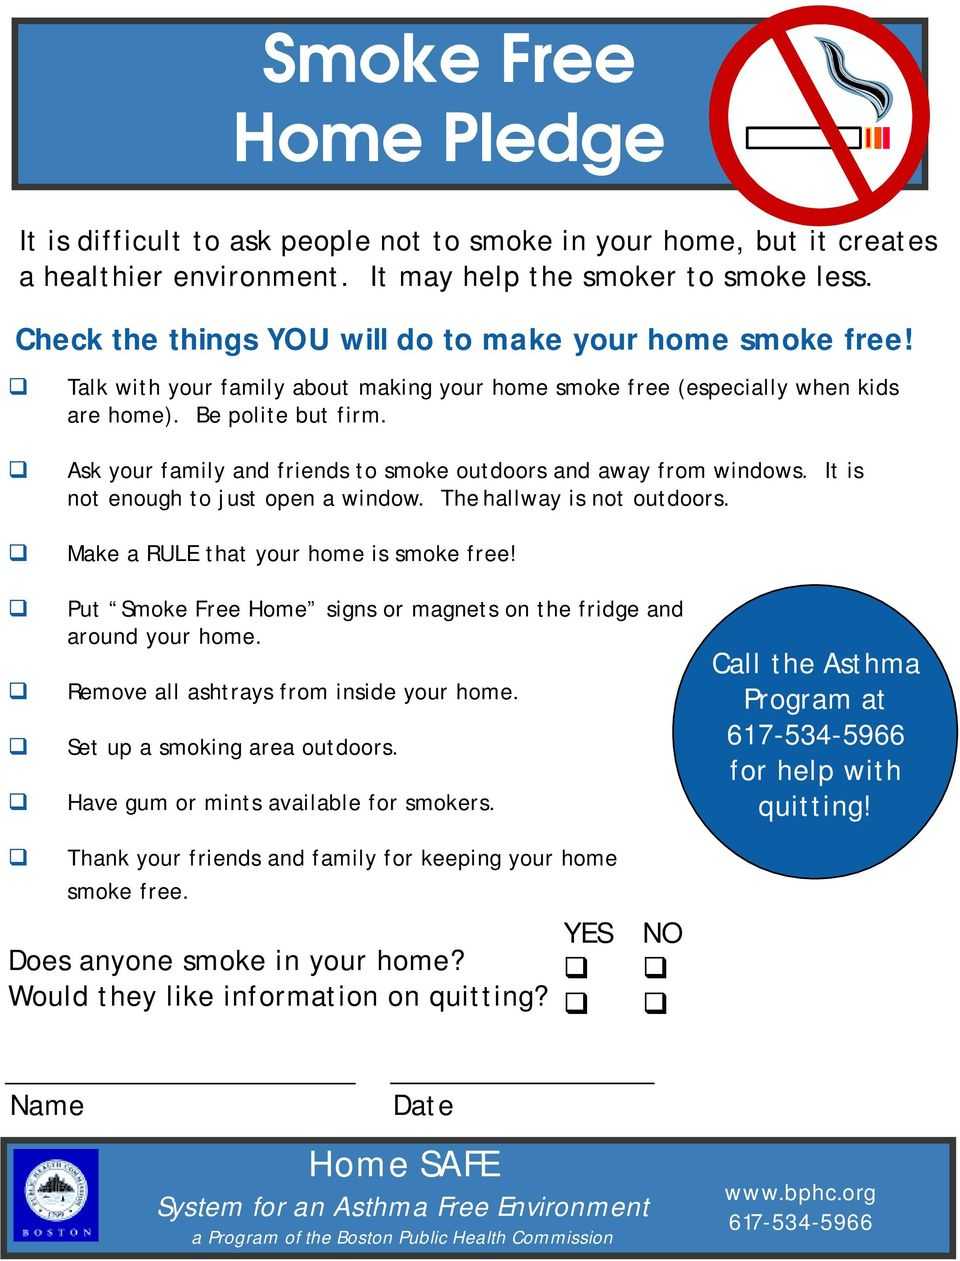 ! Ask your family and friends to smoke outdoors and away from windows. It is not enough to just open a window. The hallway is not outdoors.! Make a RULE that your home is smoke free!